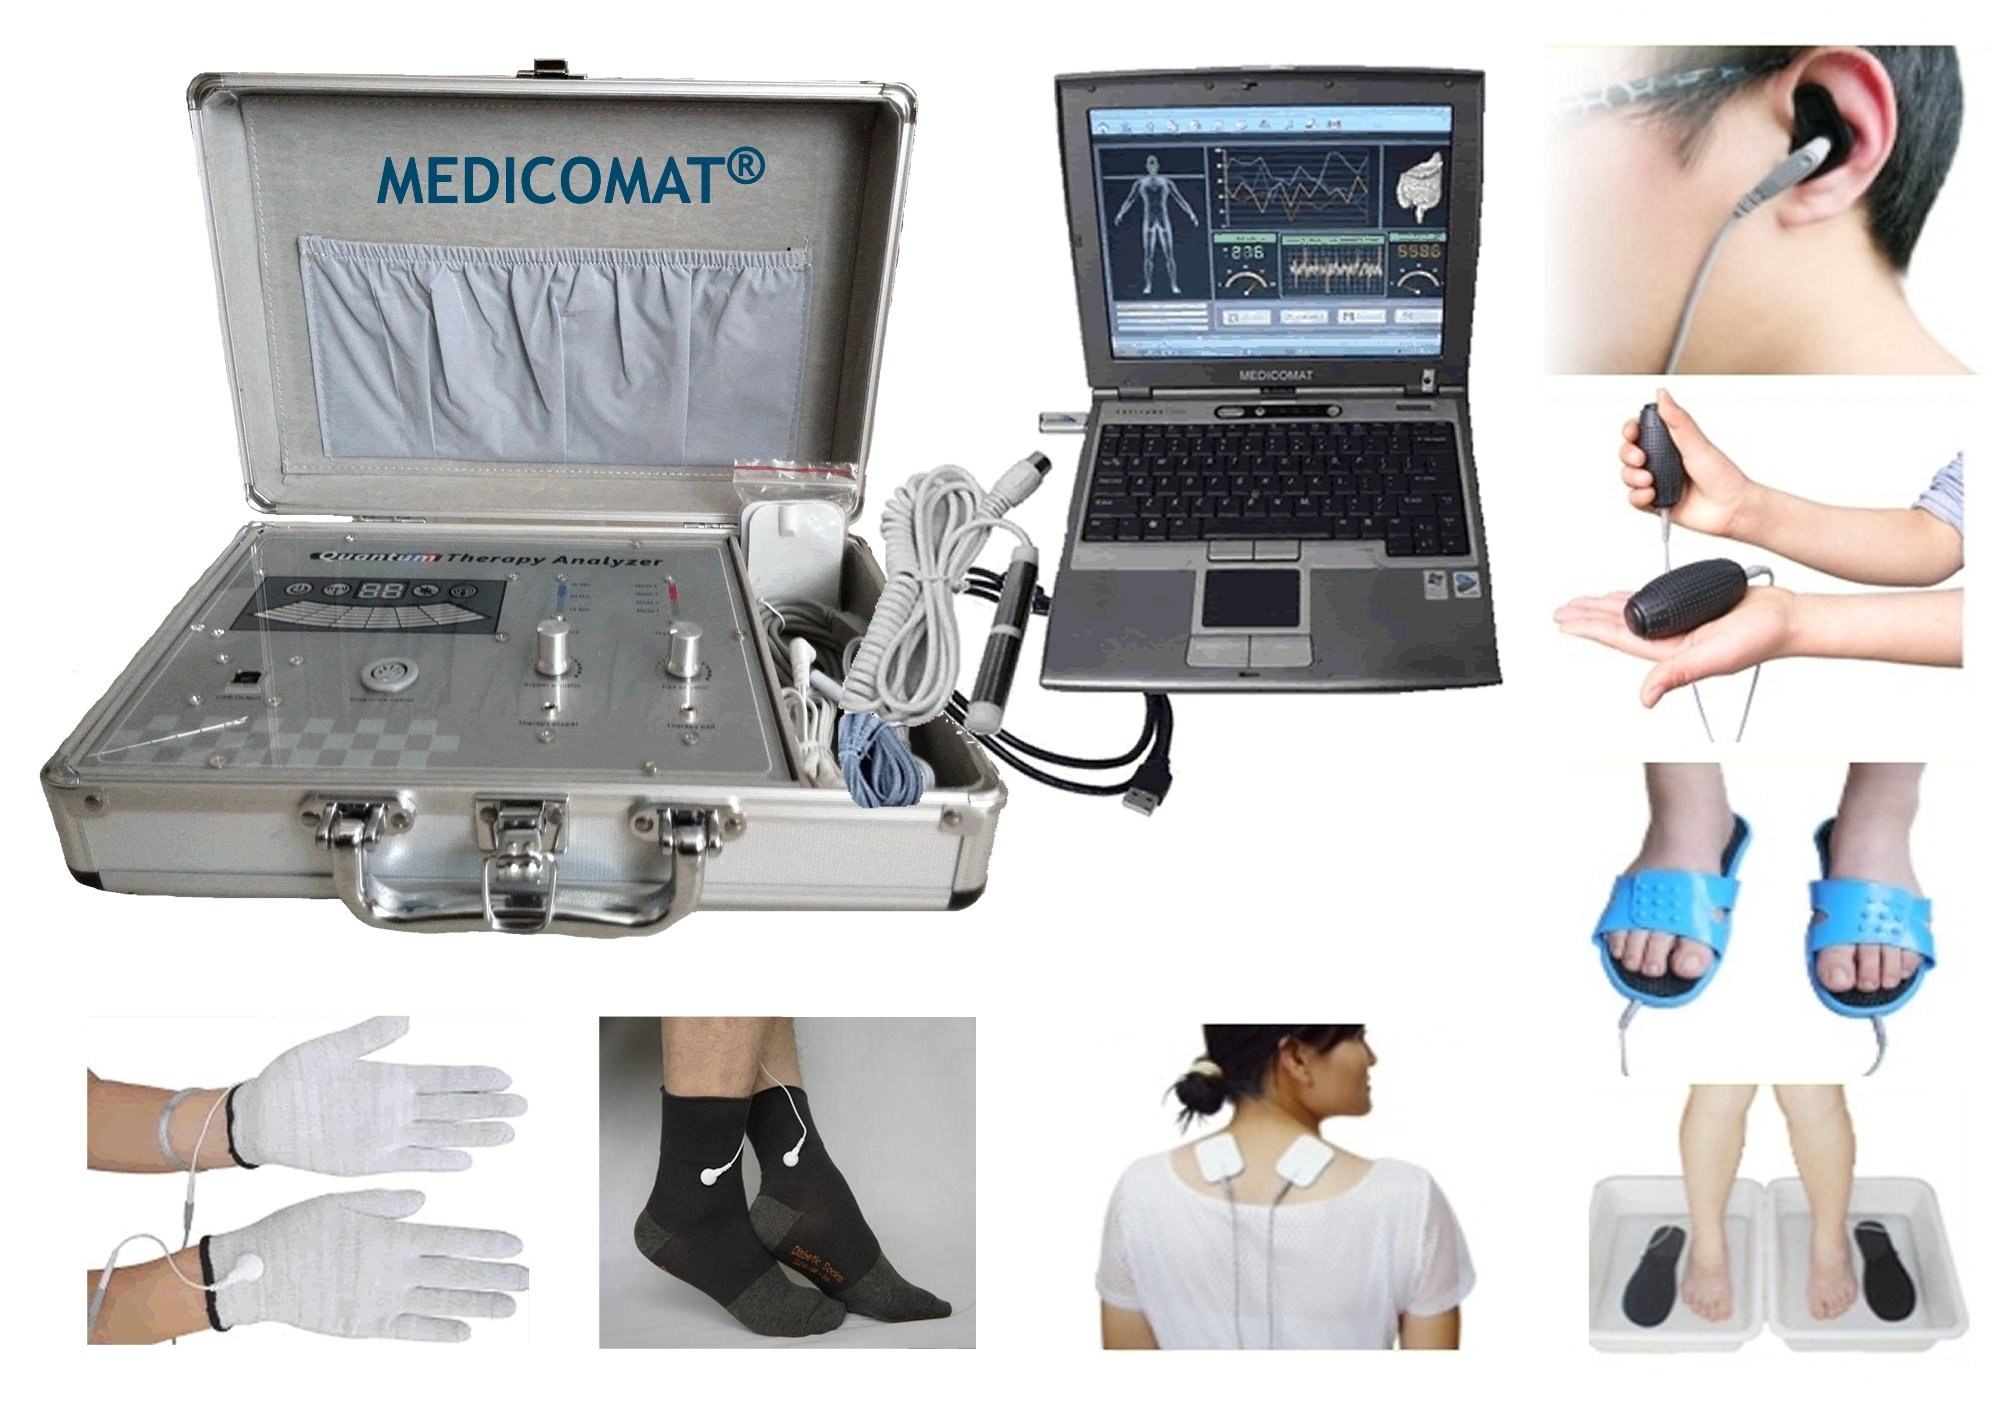 Stress Test Results Medicomat-291B Health Test Status In Minutes and Treatments Personal Diagnostic Health Computer (M - Middle Glove/Sock)